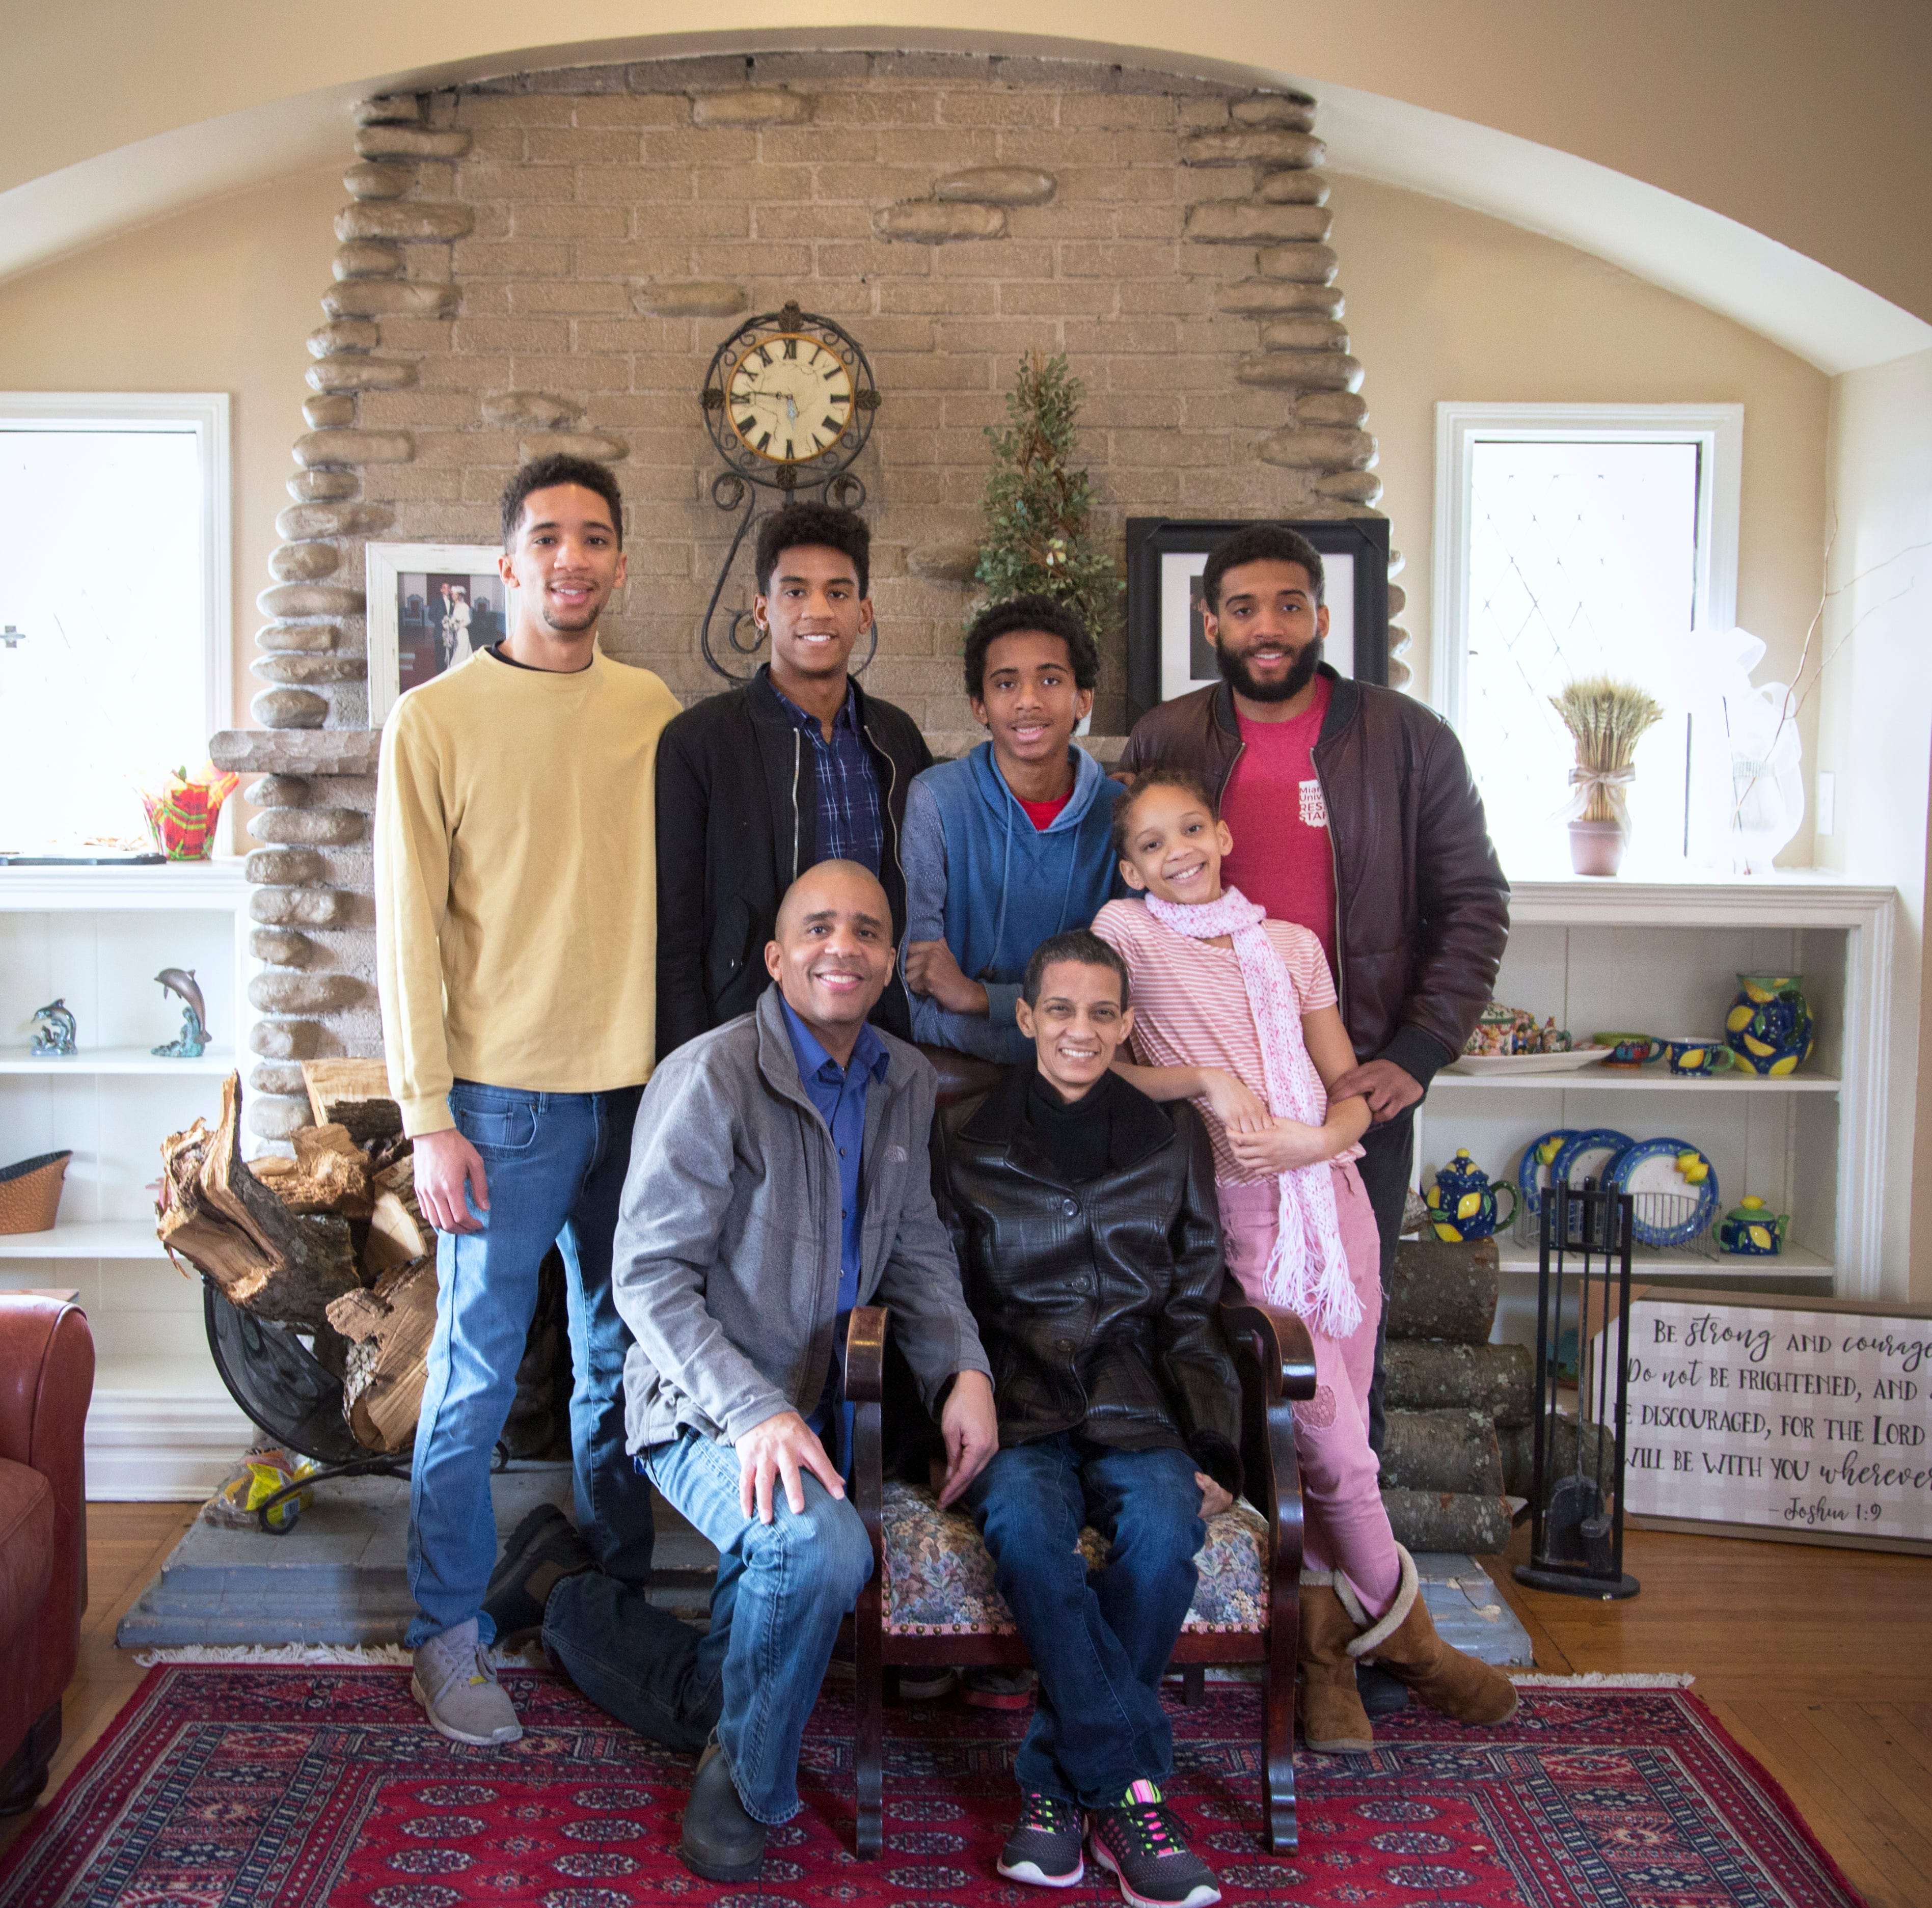 Cincinnati Vice Mayor Christopher Smitherman and his wife of 29 years, Pamela, with their children at their home in North Avondale. Pamela has been battling cancer for the past two years. Their children (L-R) Malcolm, Isaac, Caleb, Camille and Christopher Jr.